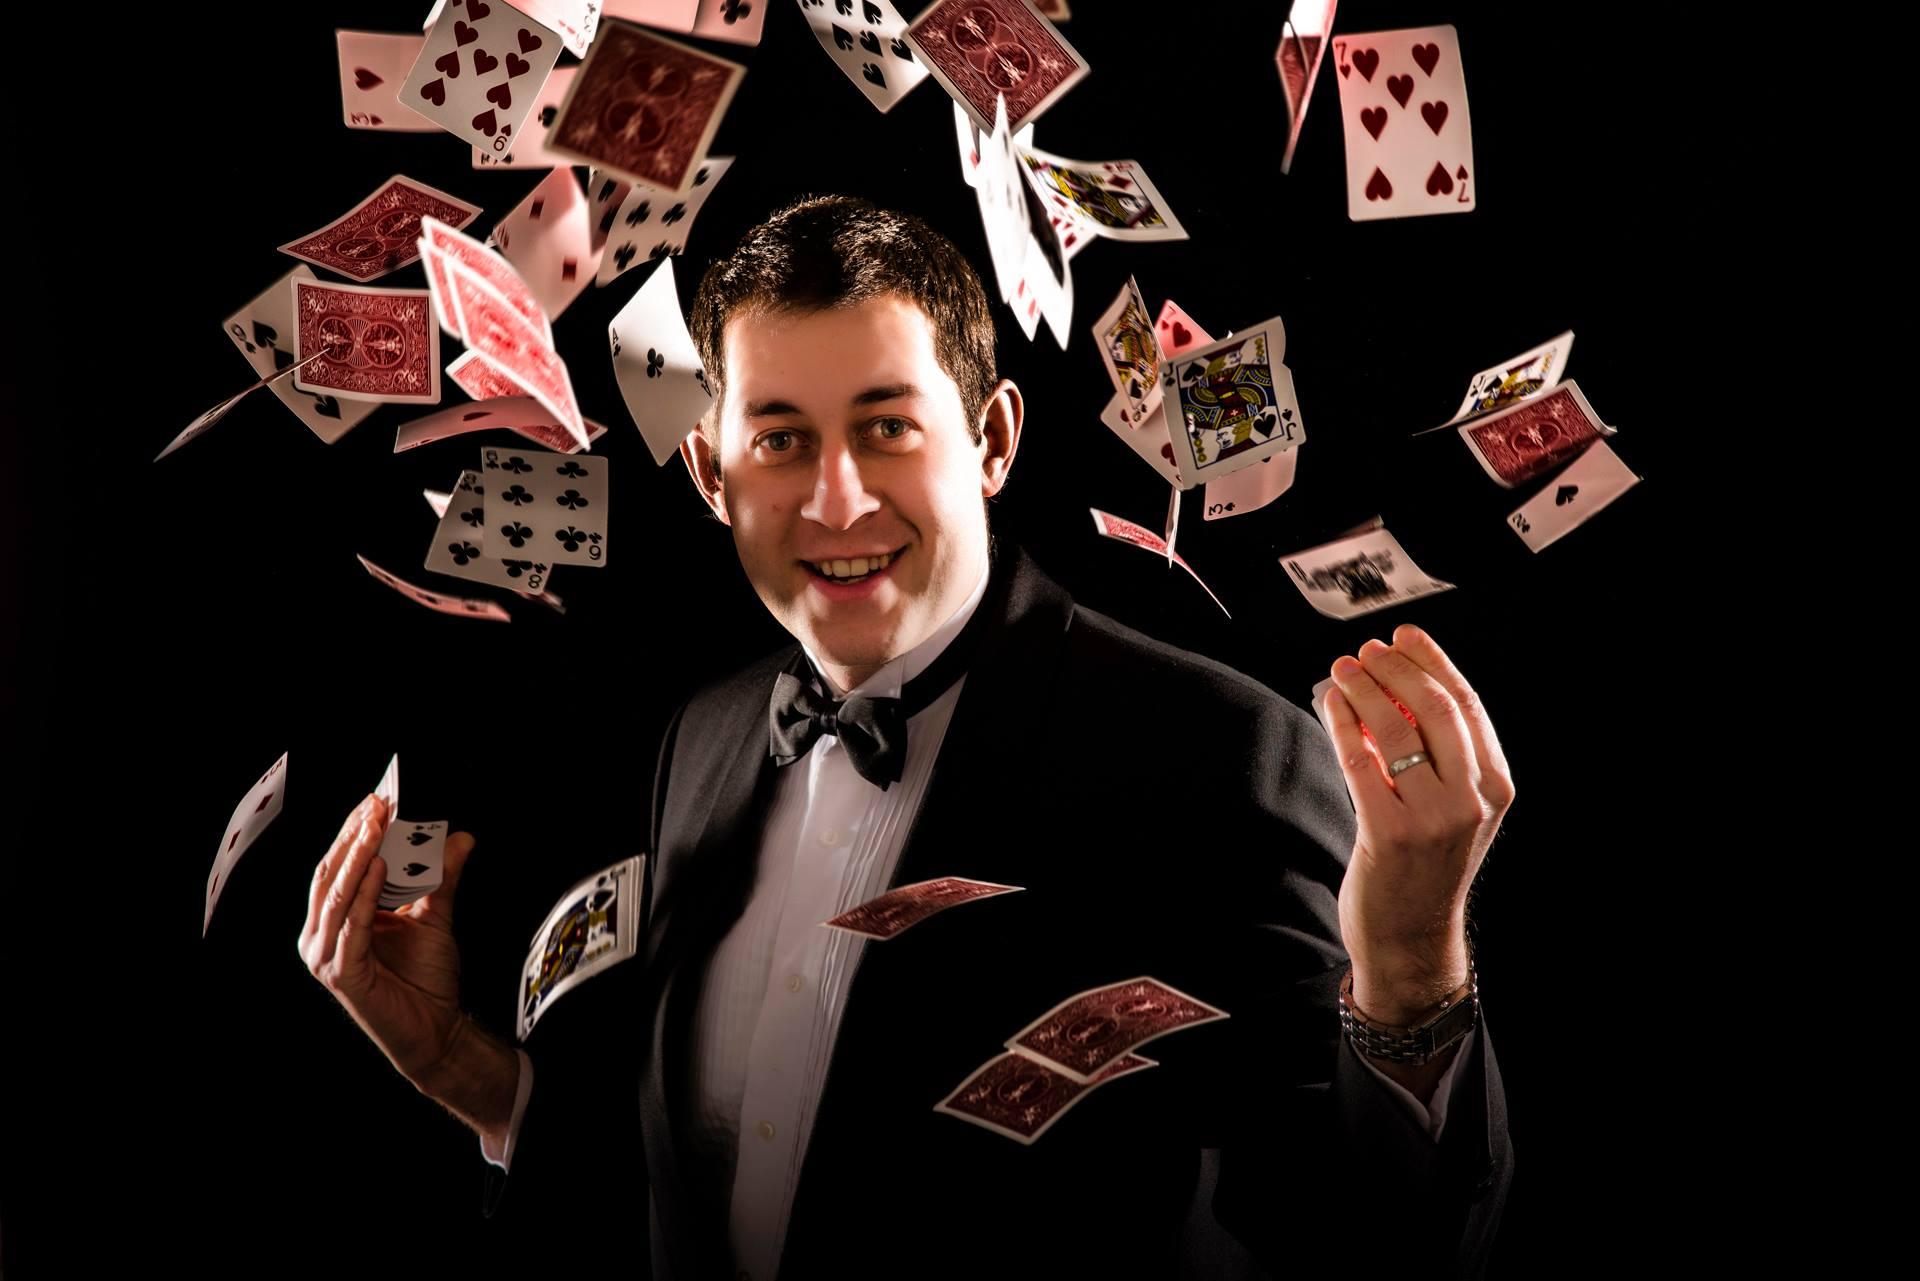 Childrens Entertainer, Magician, Speciality Act #3602 Image